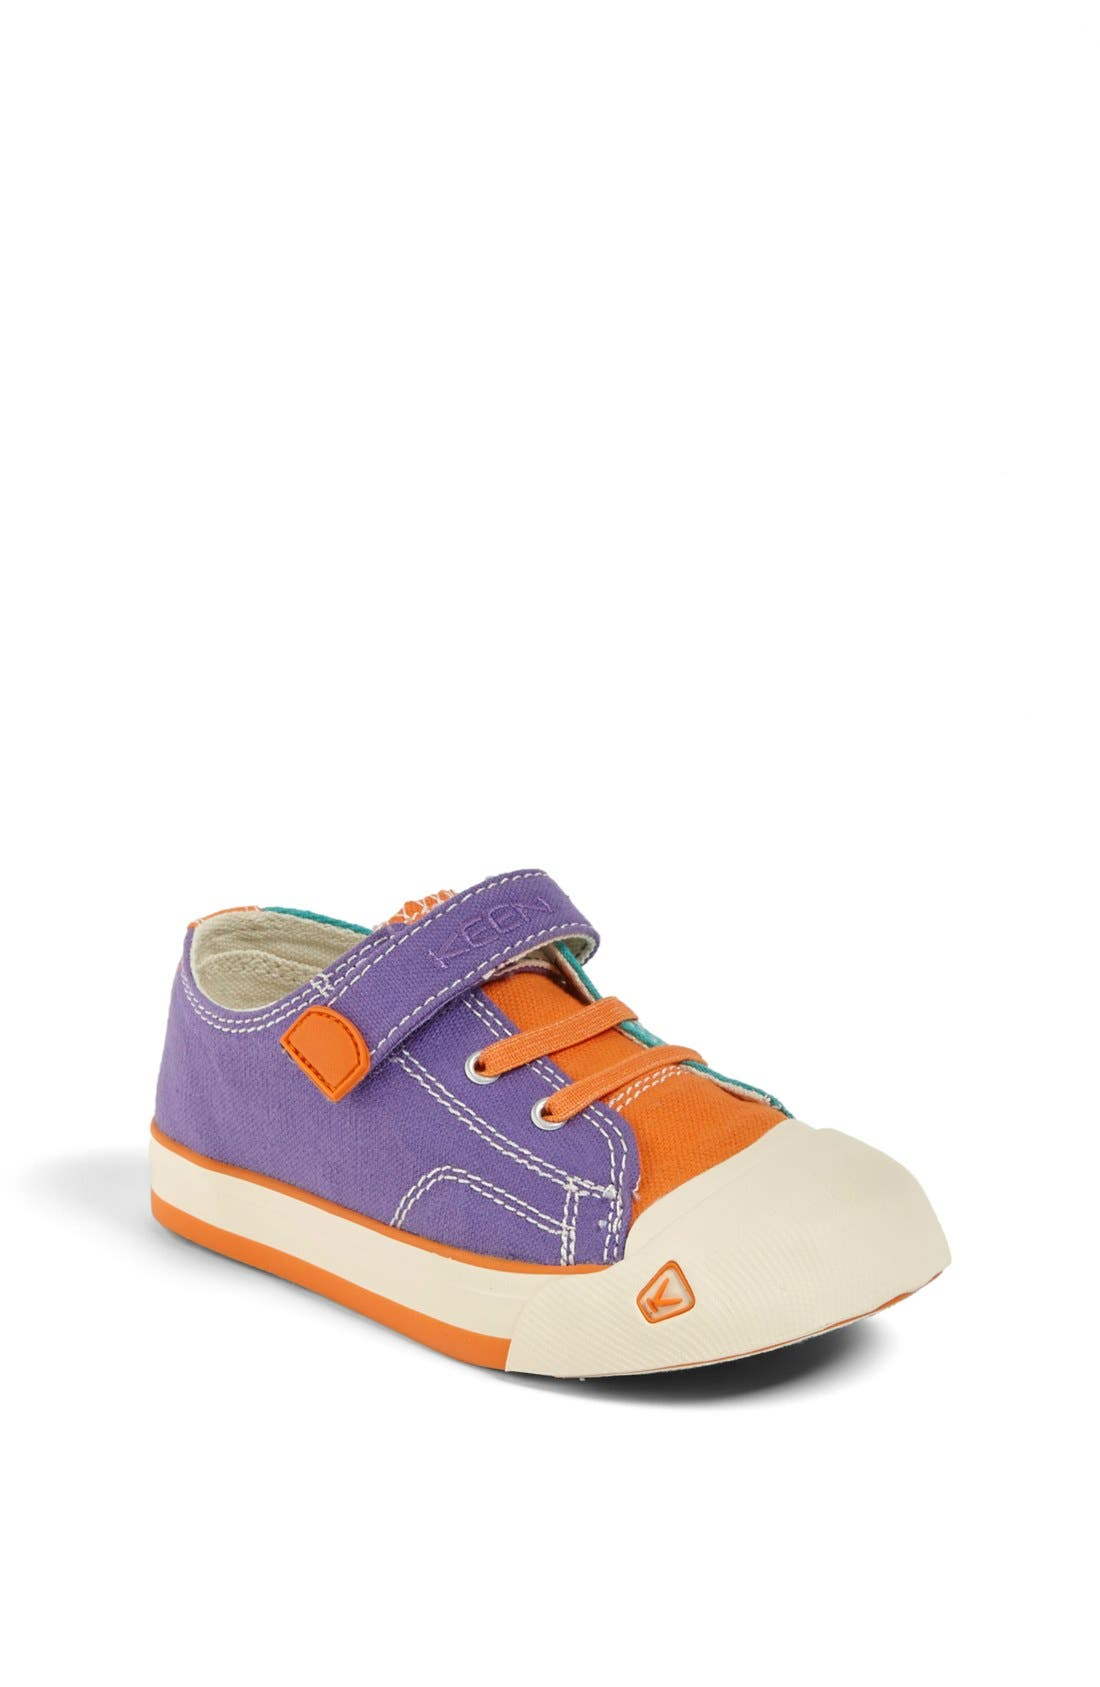 Main Image - Keen 'Coronado' Sneaker (Toddler & Little Kid)